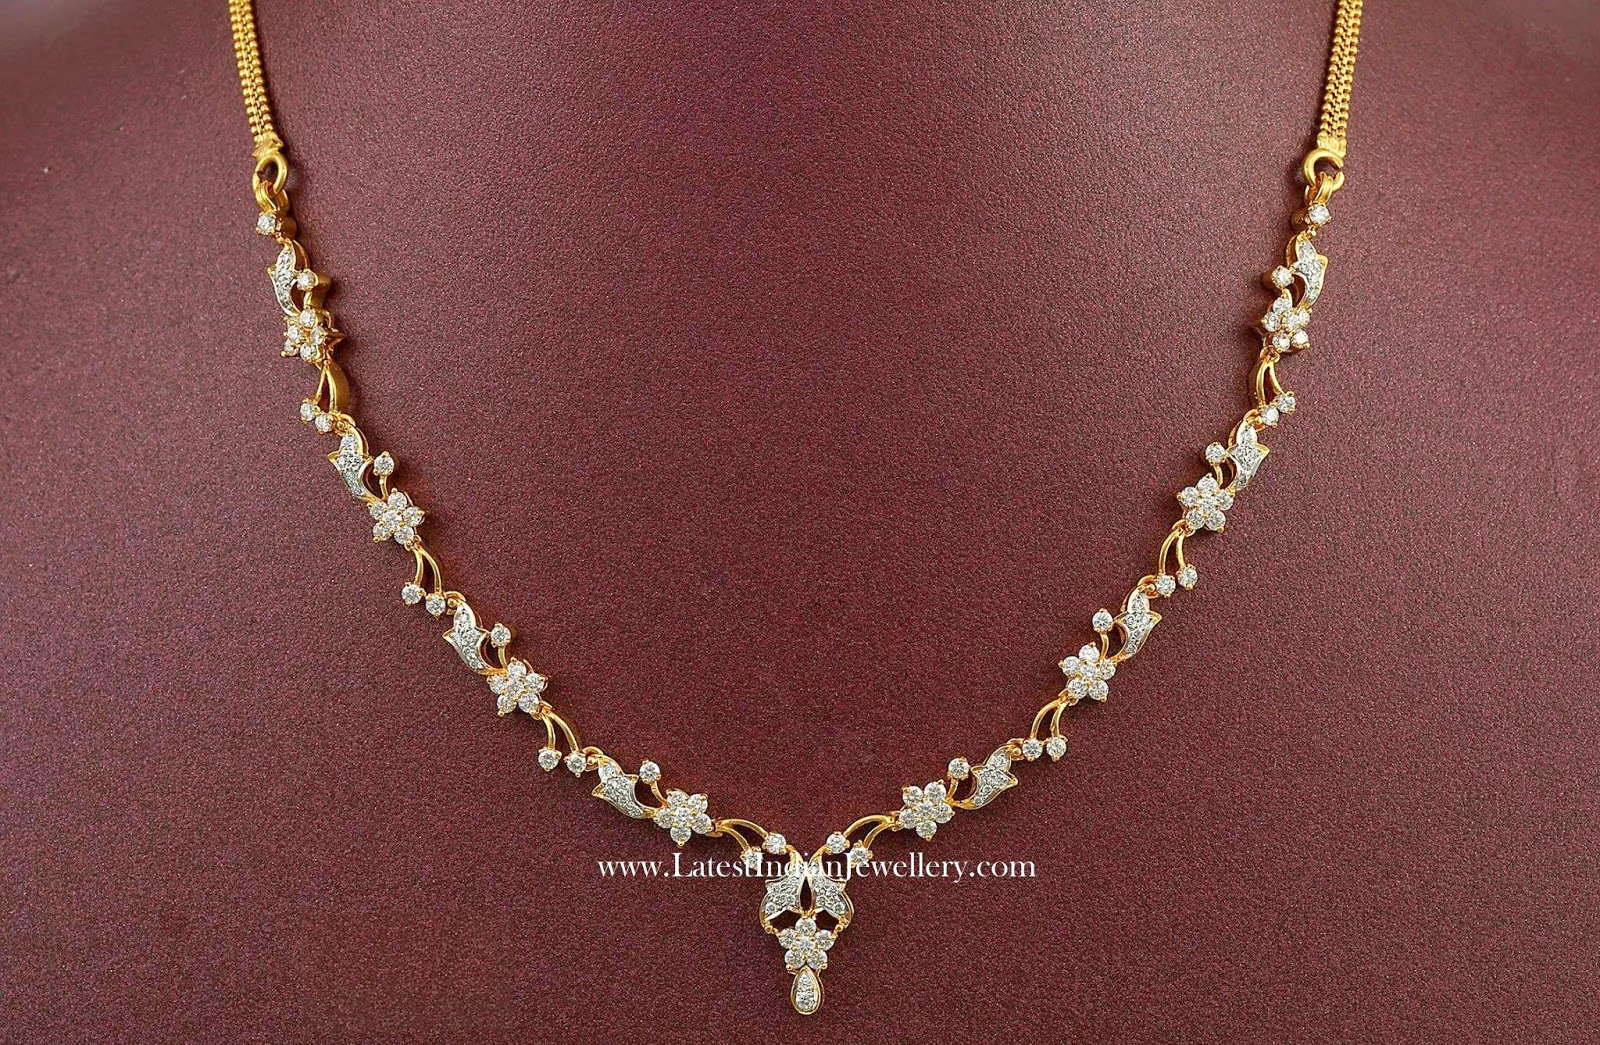 Latest Indian Diamond Necklace Designs